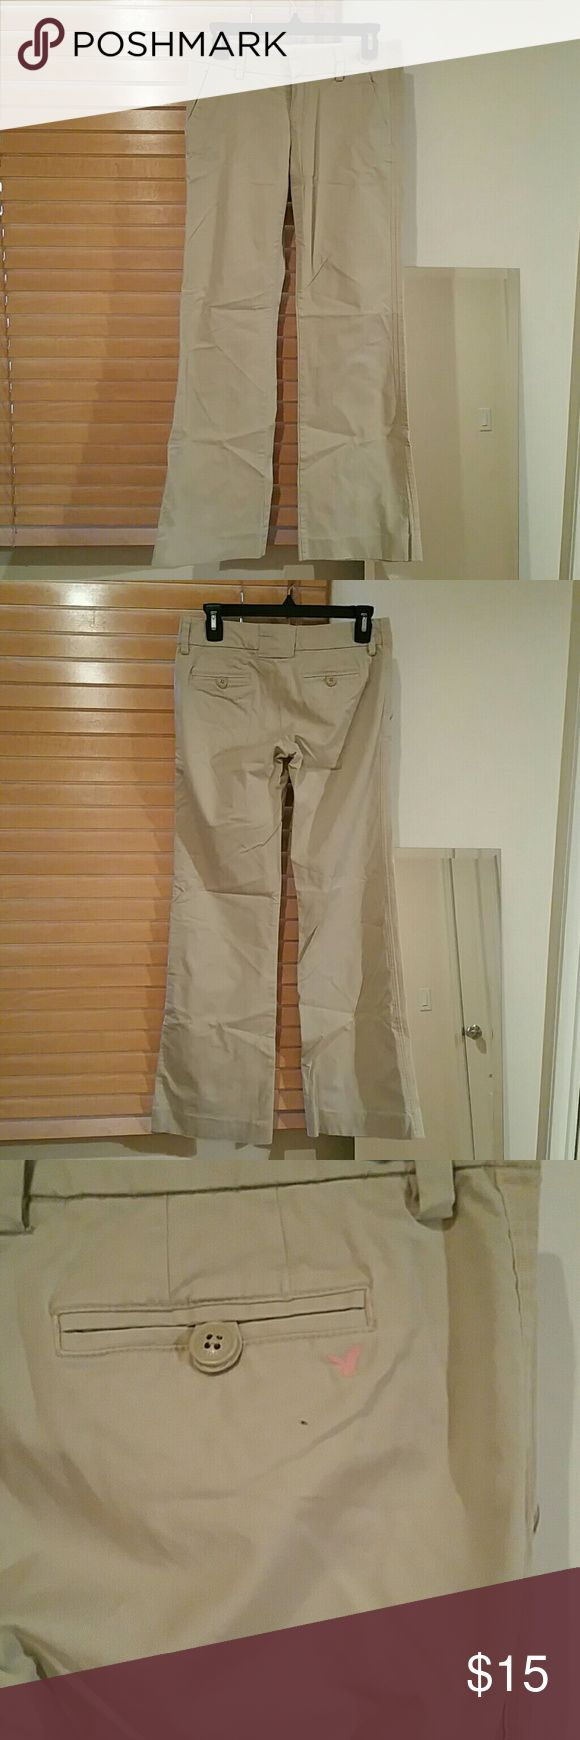 American Eagle Khaki Pants American Eagle Khaki Pants. Wide and straight legged khaki pants perfect for semi formal affairs and presentations. American Eagle Outfitters Pants Trousers